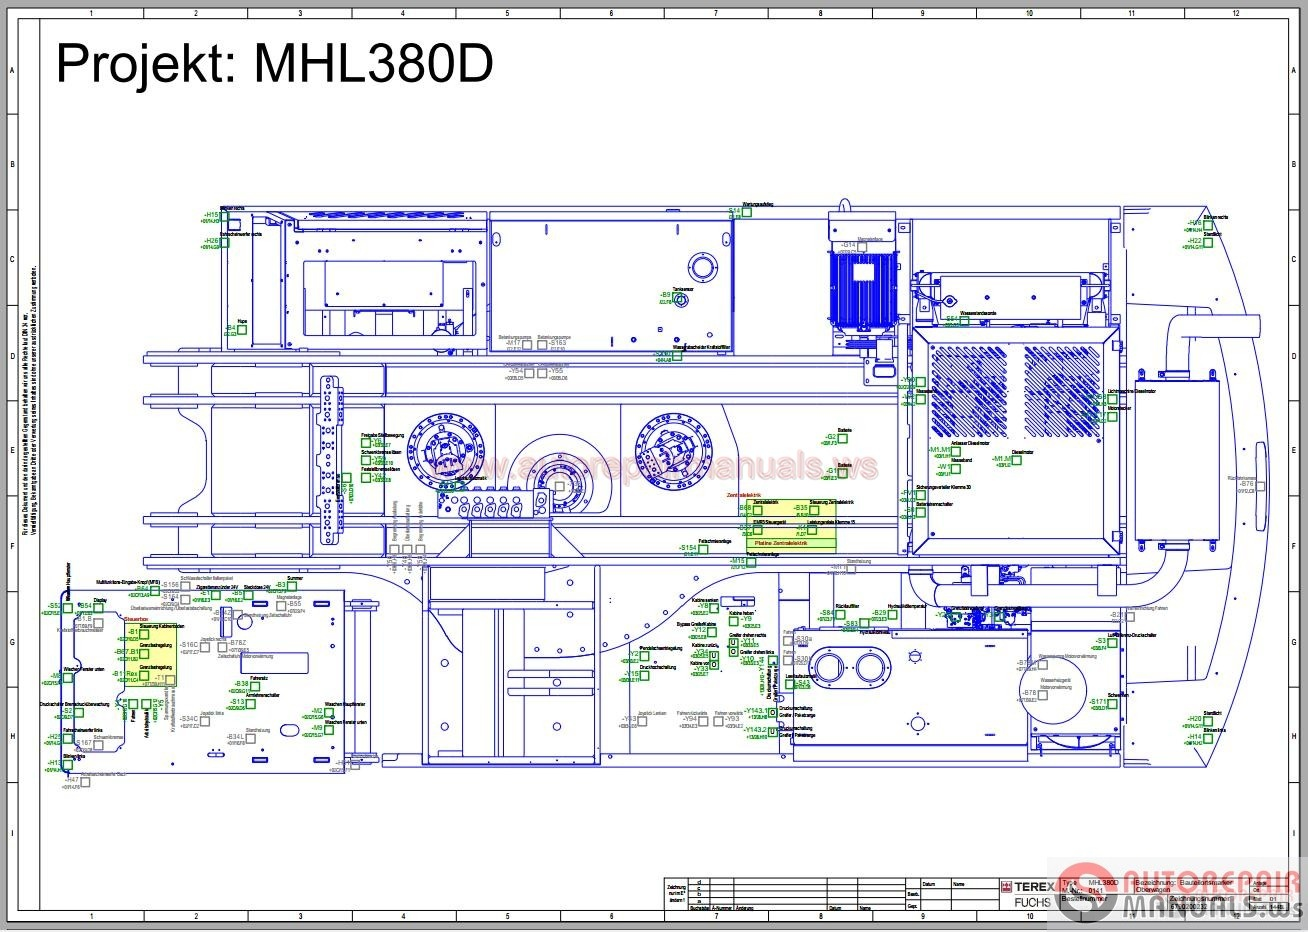 terex wiring diagrams free download diagram schematic basic wiring rh rnetcomputer co HVAC Wiring Schematics Outlet Wiring Schematic